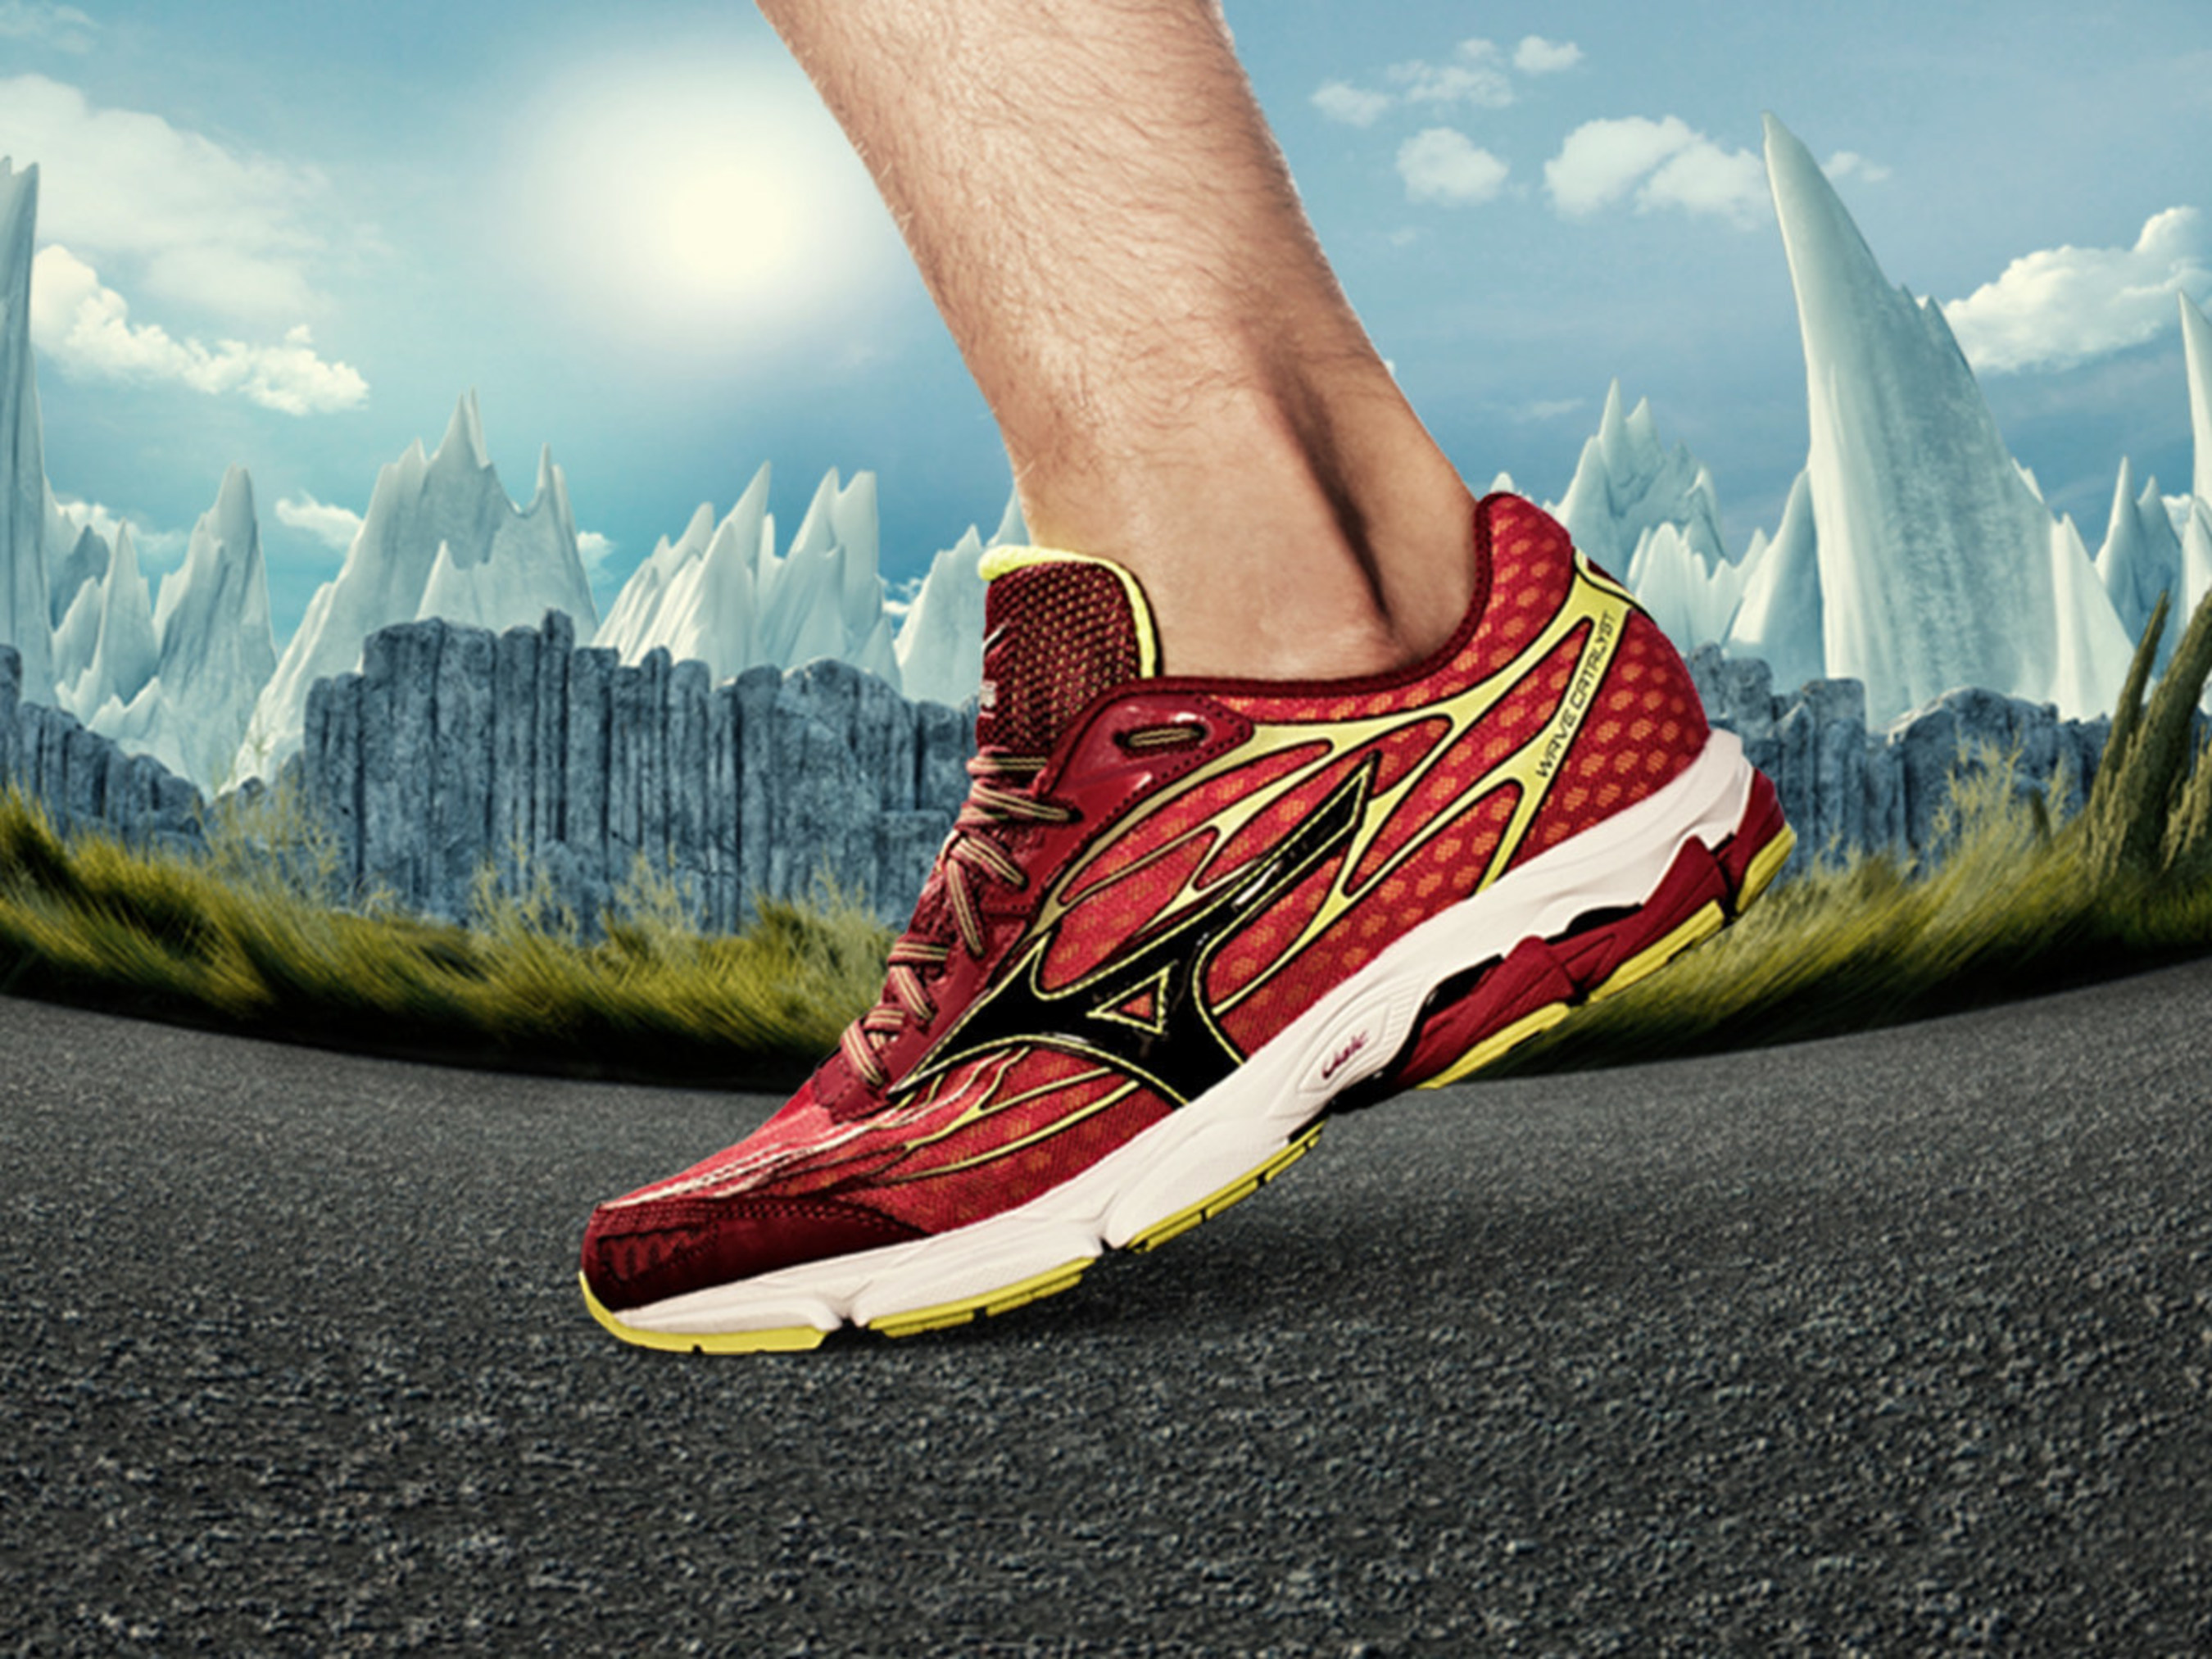 The all-new Wave Catalyst offers a lightweight feel and responsive ride.